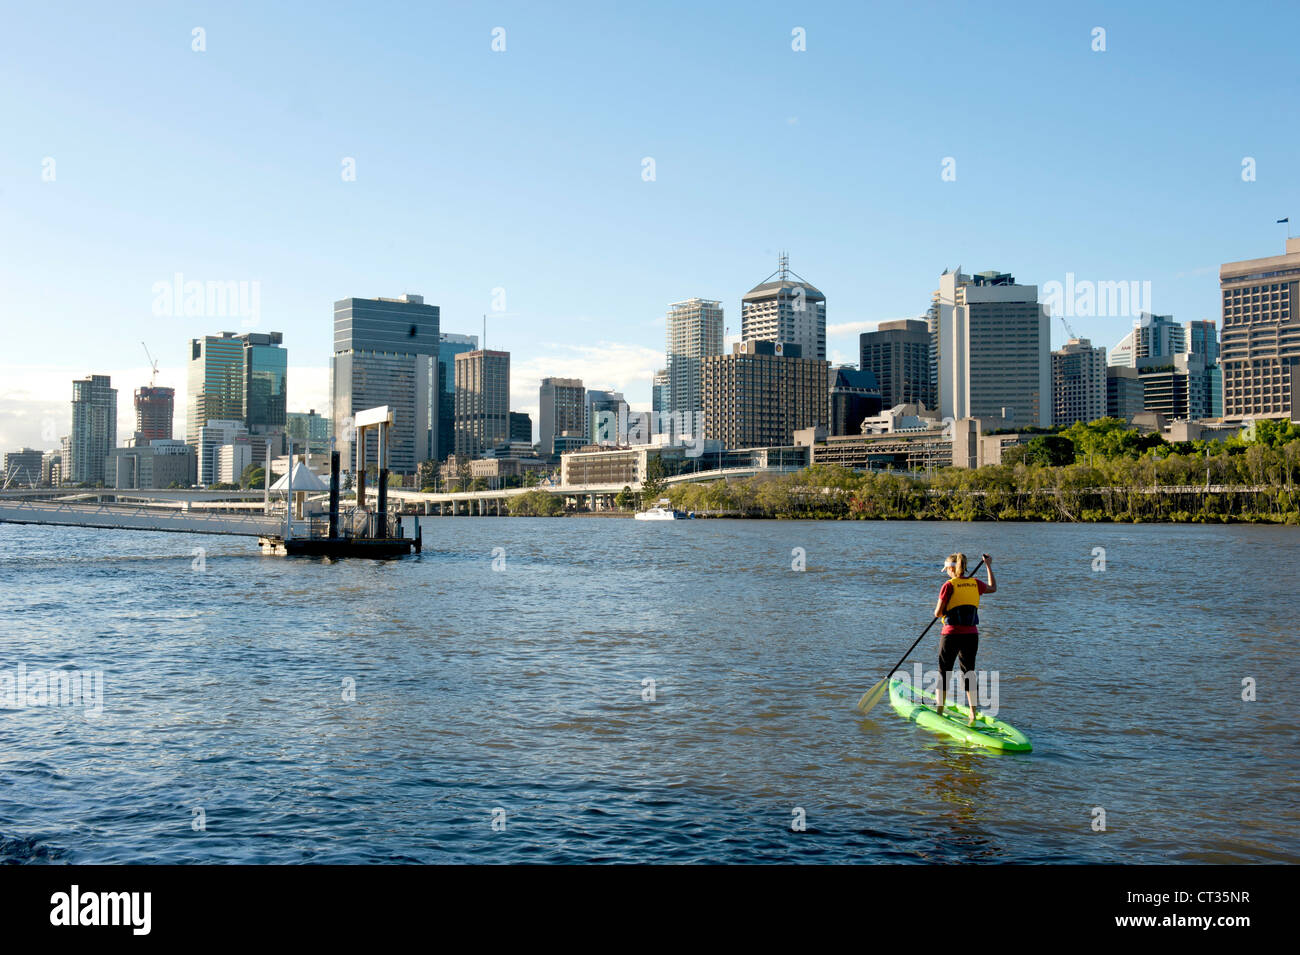 A woman doing stand-up paddling on Brisbane River with the CBD in view, Queensland, Australia - Stock Image